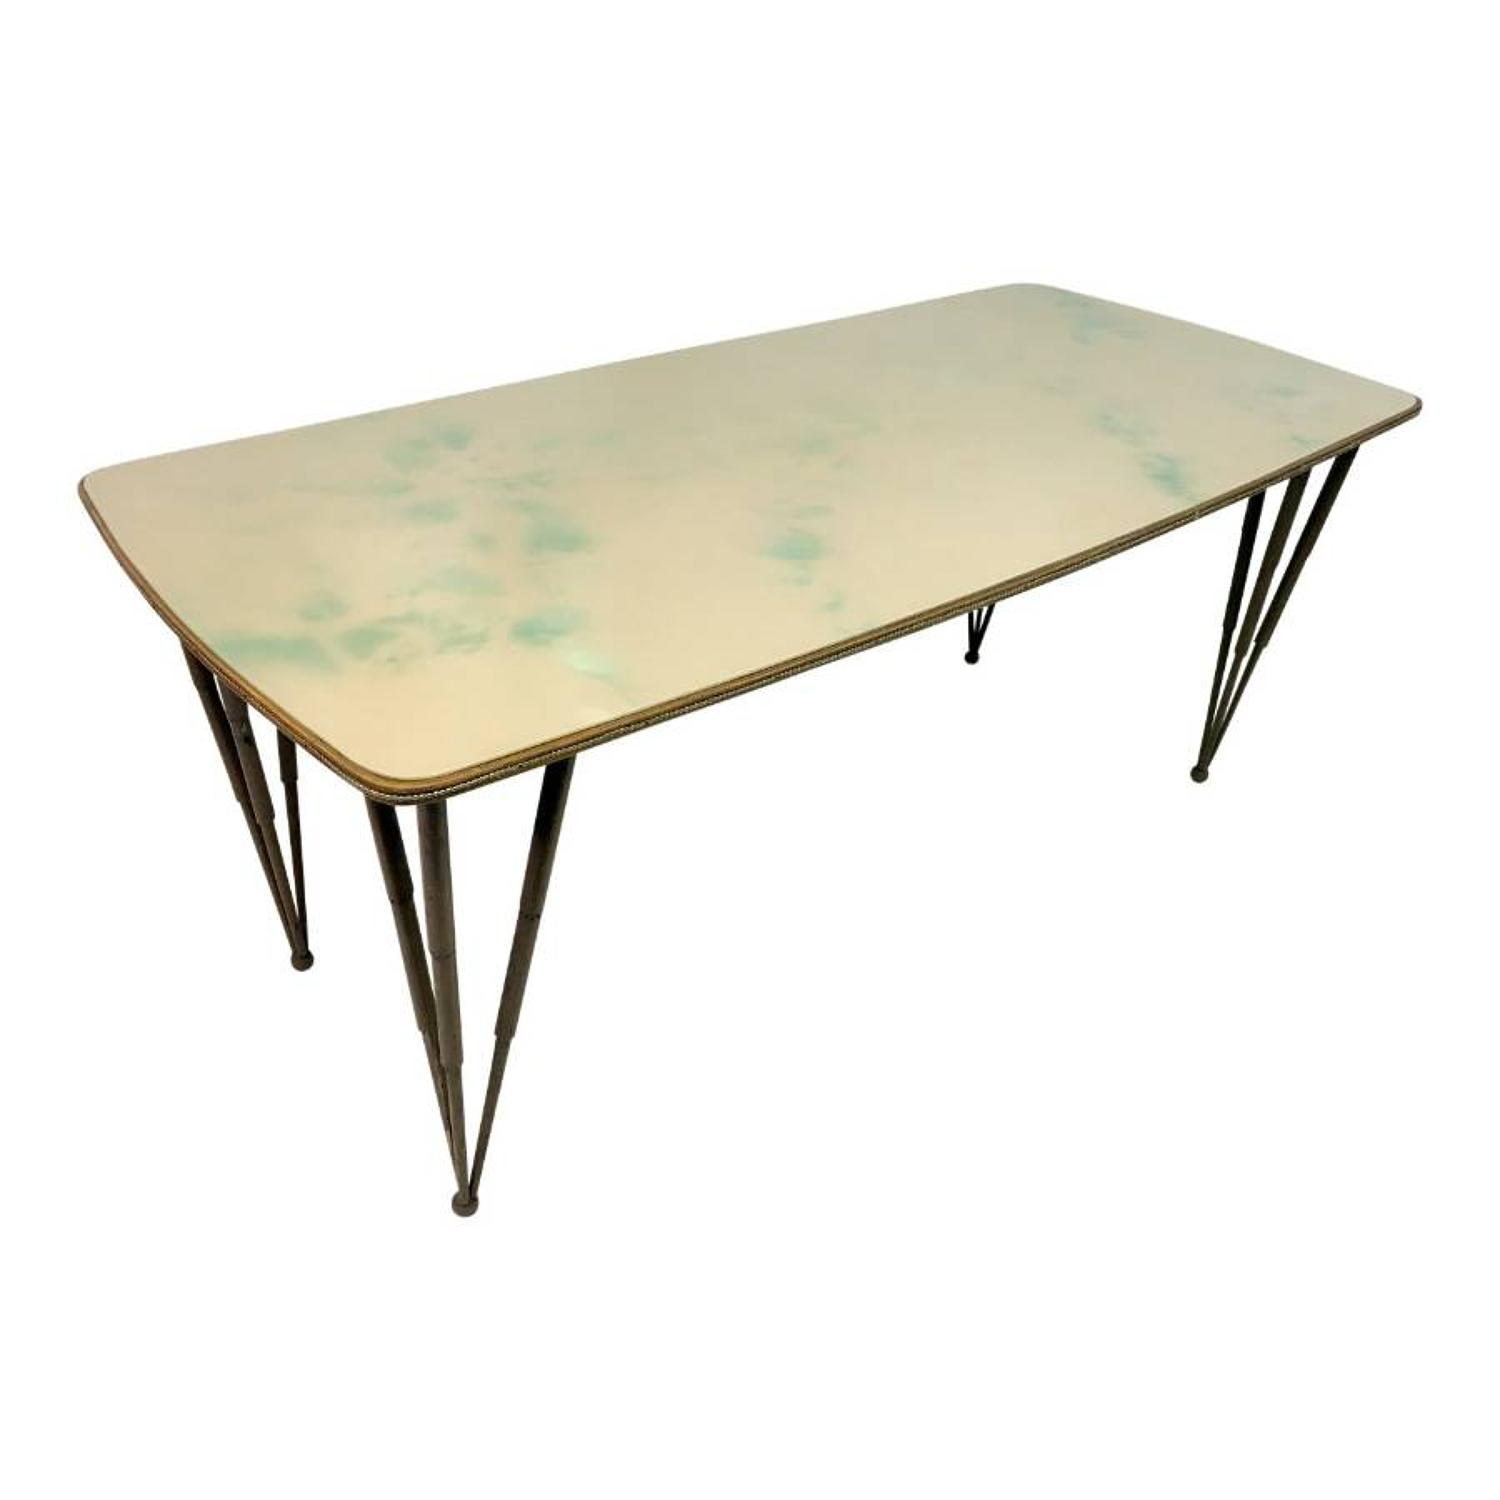 1950s Italian glass topped dining table with metal legs